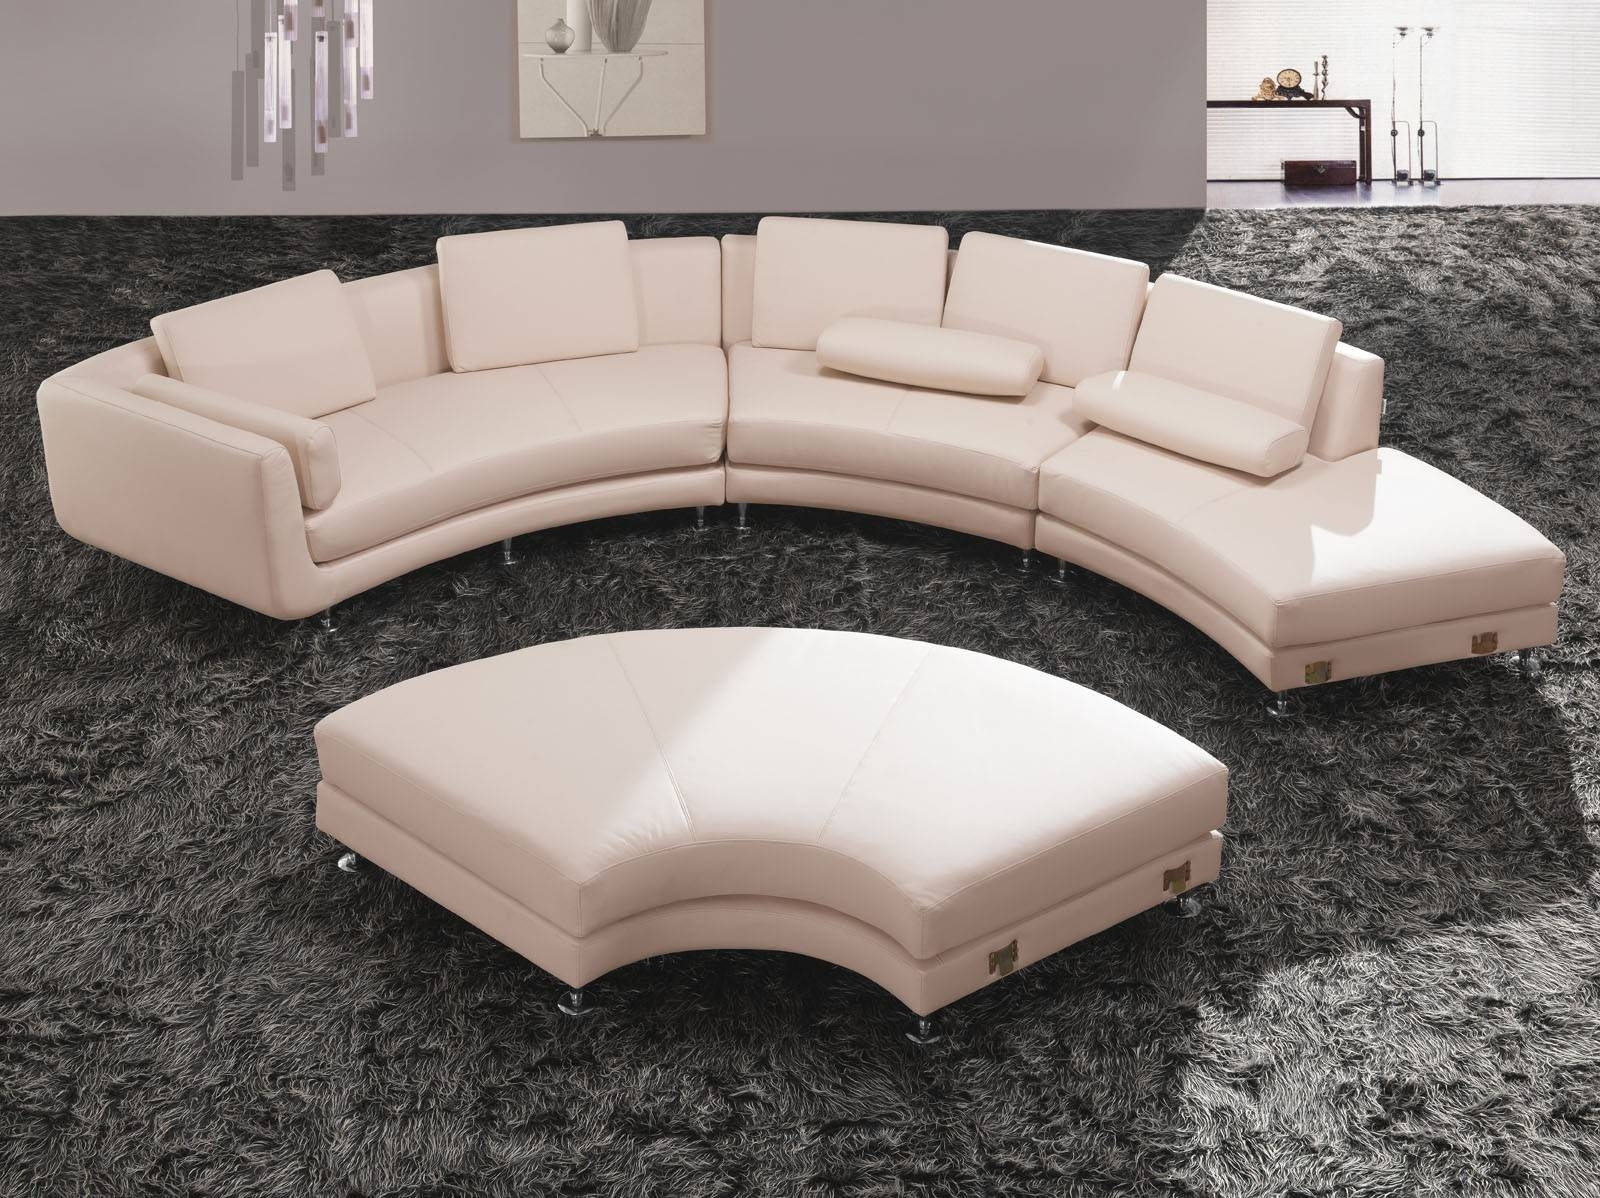 Circular Sectional Sofa Canada | Tehranmix Decoration for Round Sectional Sofa Bed (Image 6 of 25)